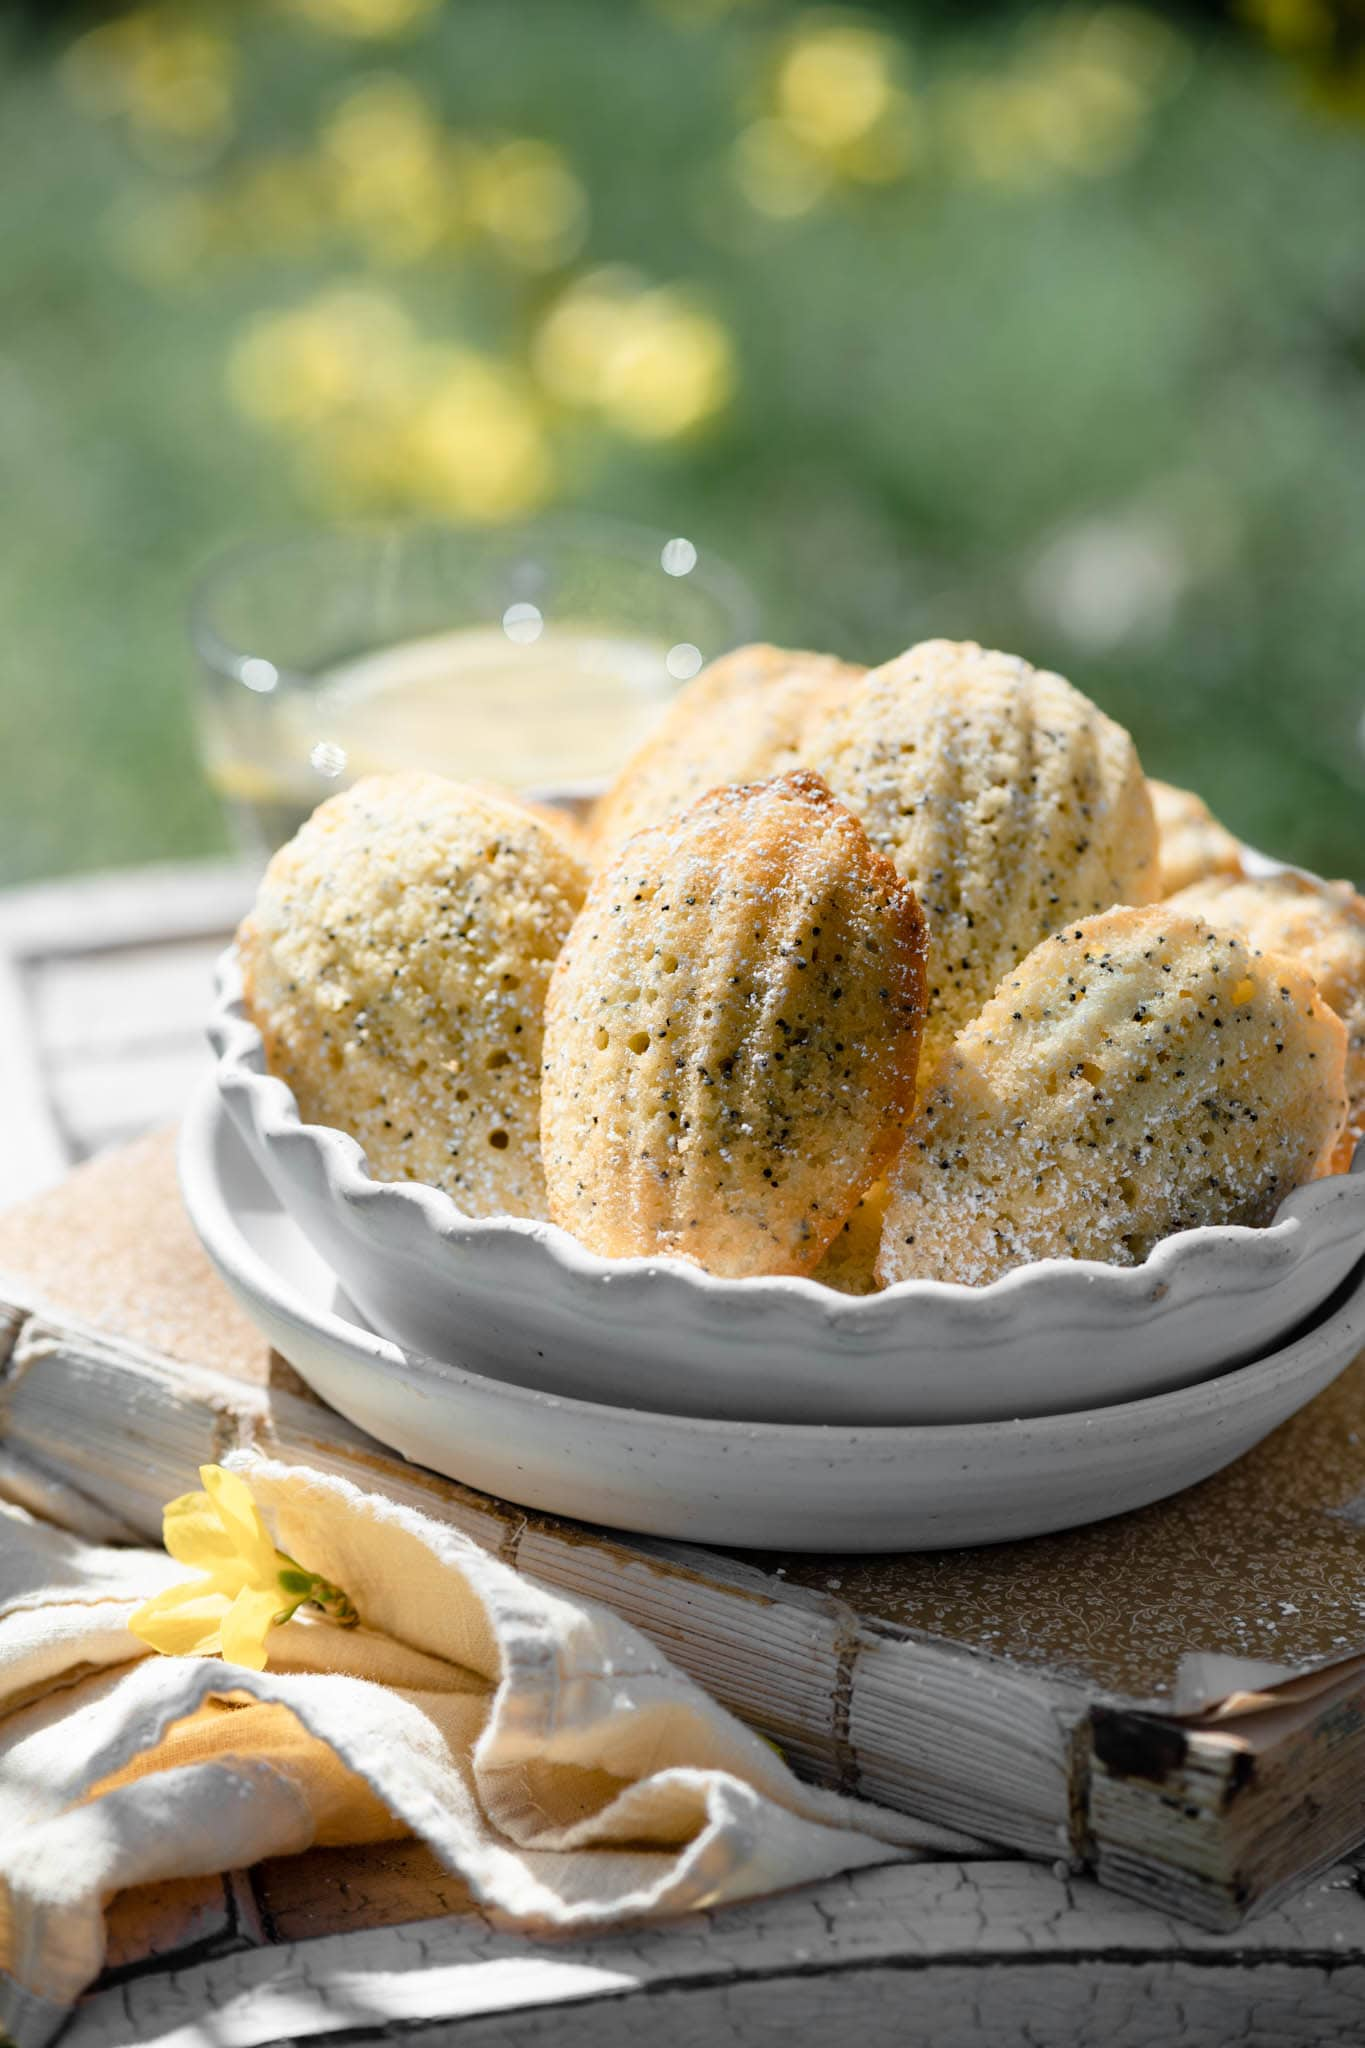 Lemon Recette Madeleines with poppyseeds.